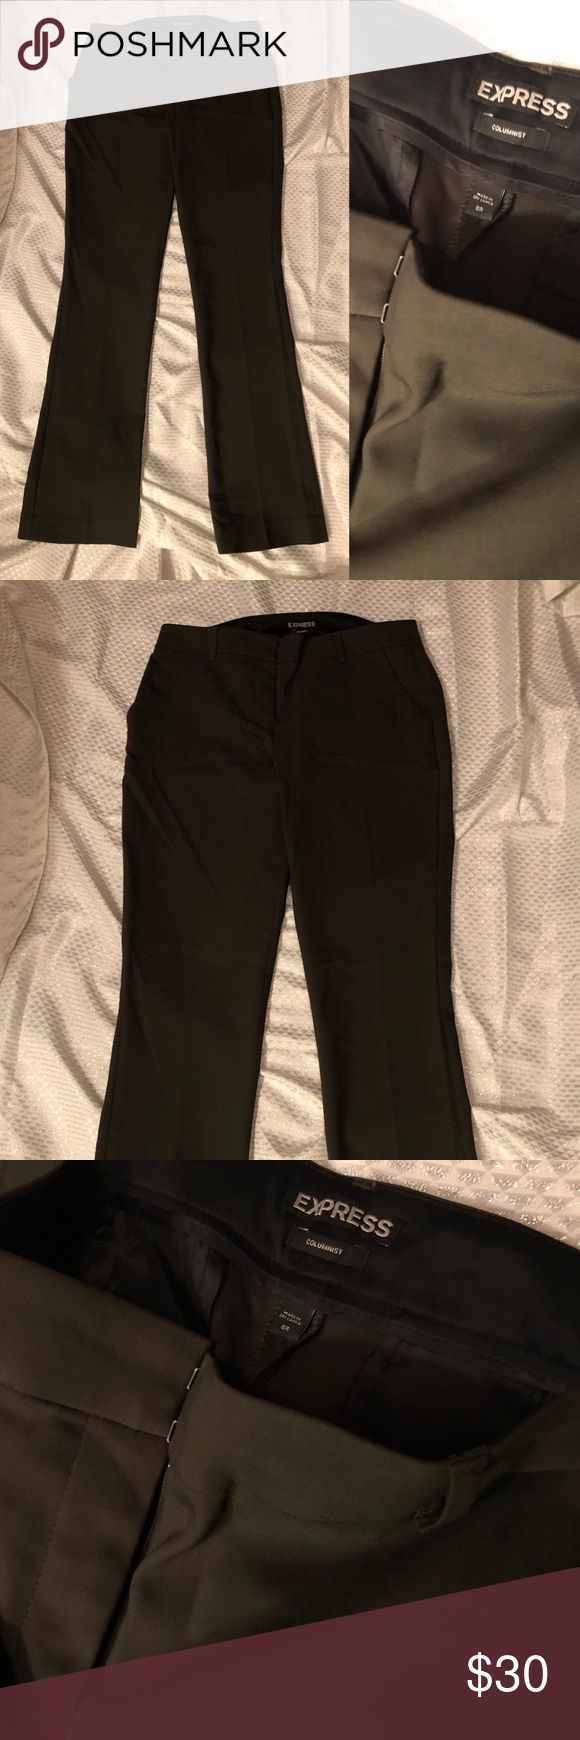 NWOT Express Columnist Army Olive green pants 6 6R NWOT Express Columnist Army Olive green pants 6 6R Express Pants Trousers